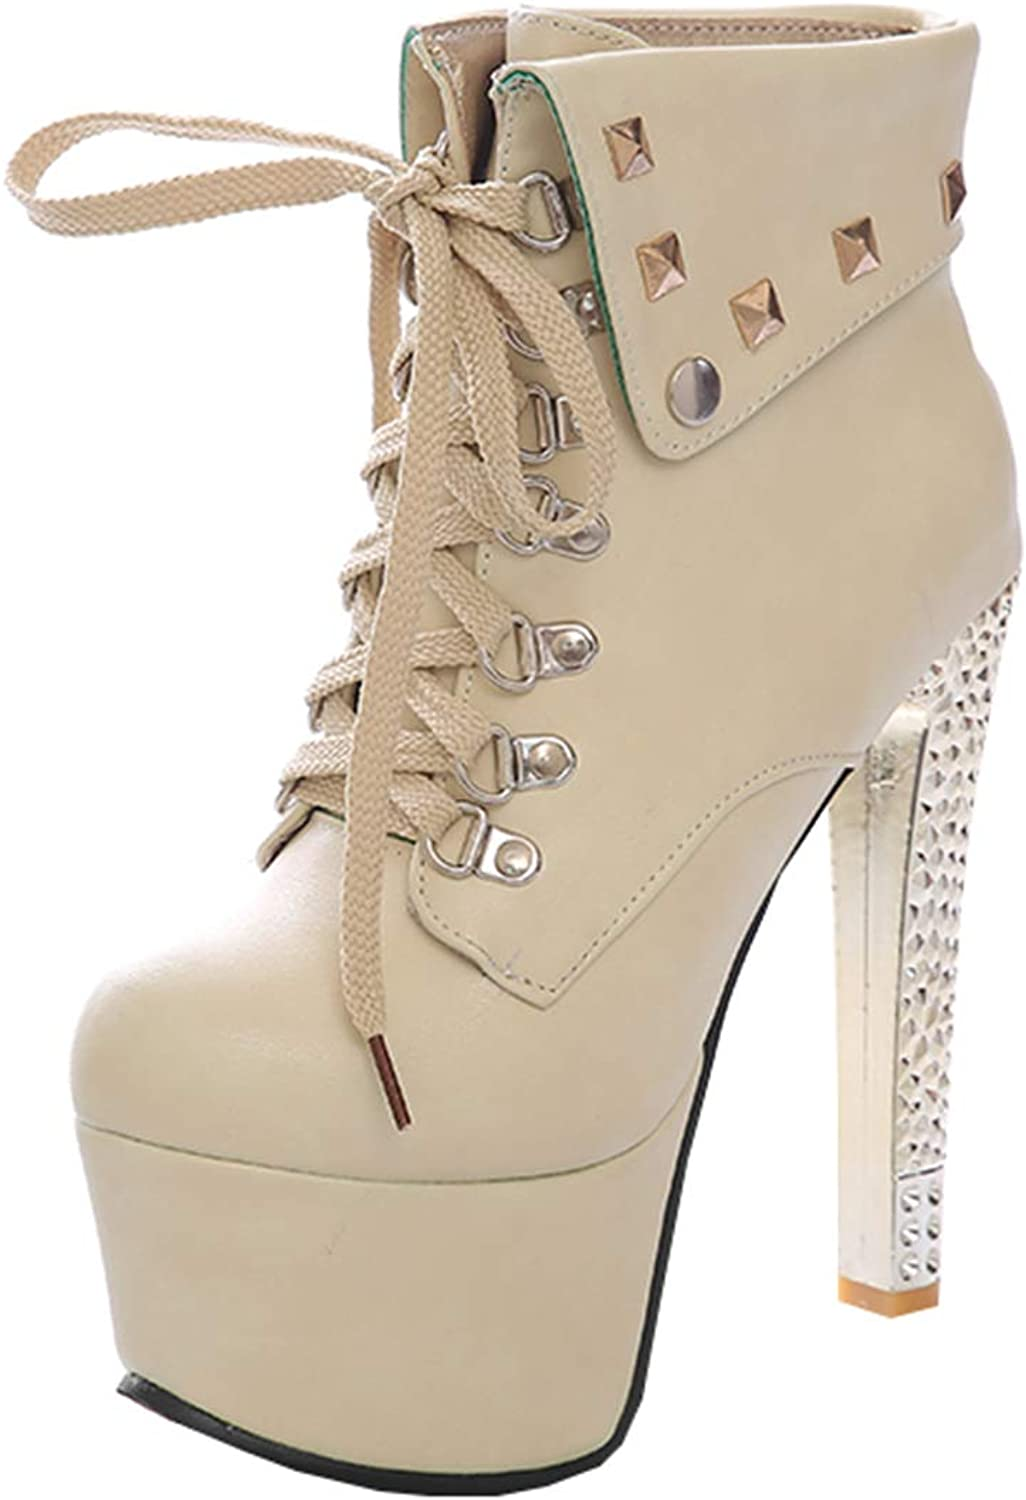 Artfaerie Womens Studded Platform Ankle High Heel Boots Lace Up Booties Ladies Winter Warm shoes